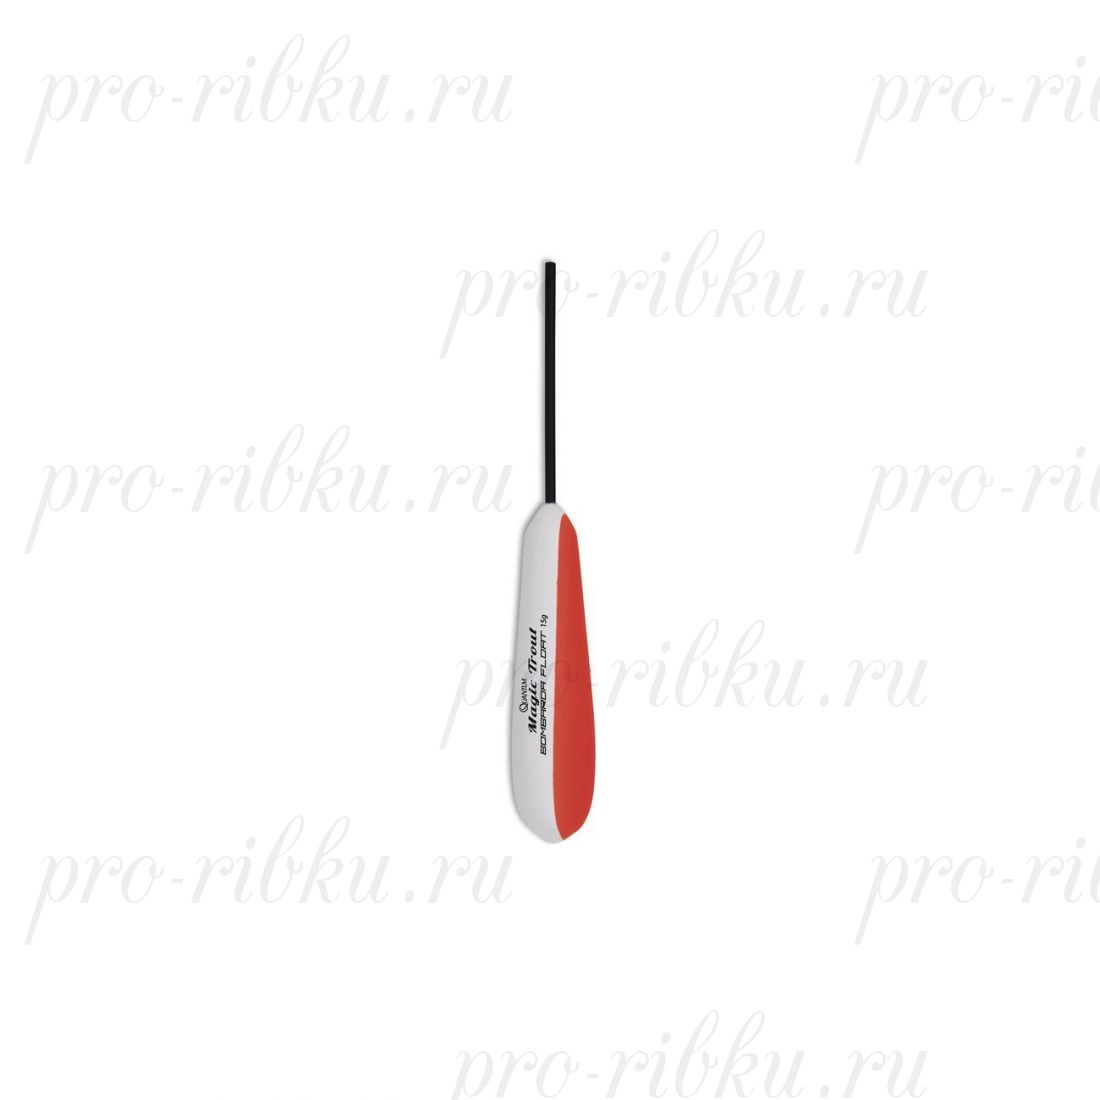 Бомбарда Quantum Bombarda Float 10g 1cont white/red